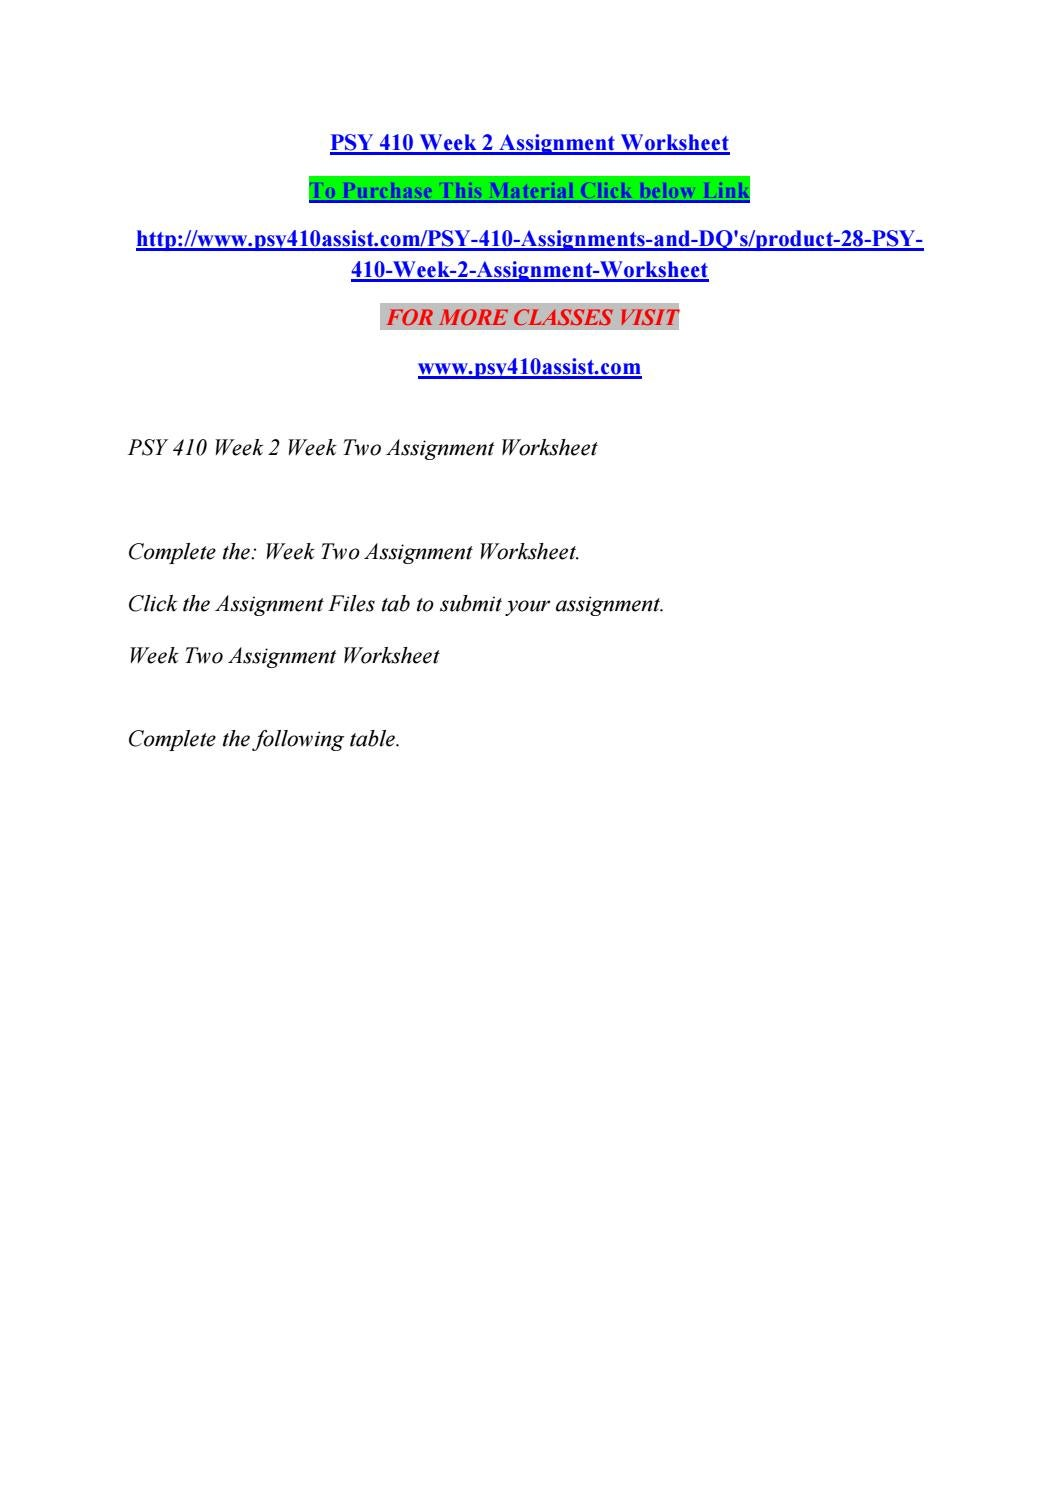 psy410 r4 week 1 assignment worksheet